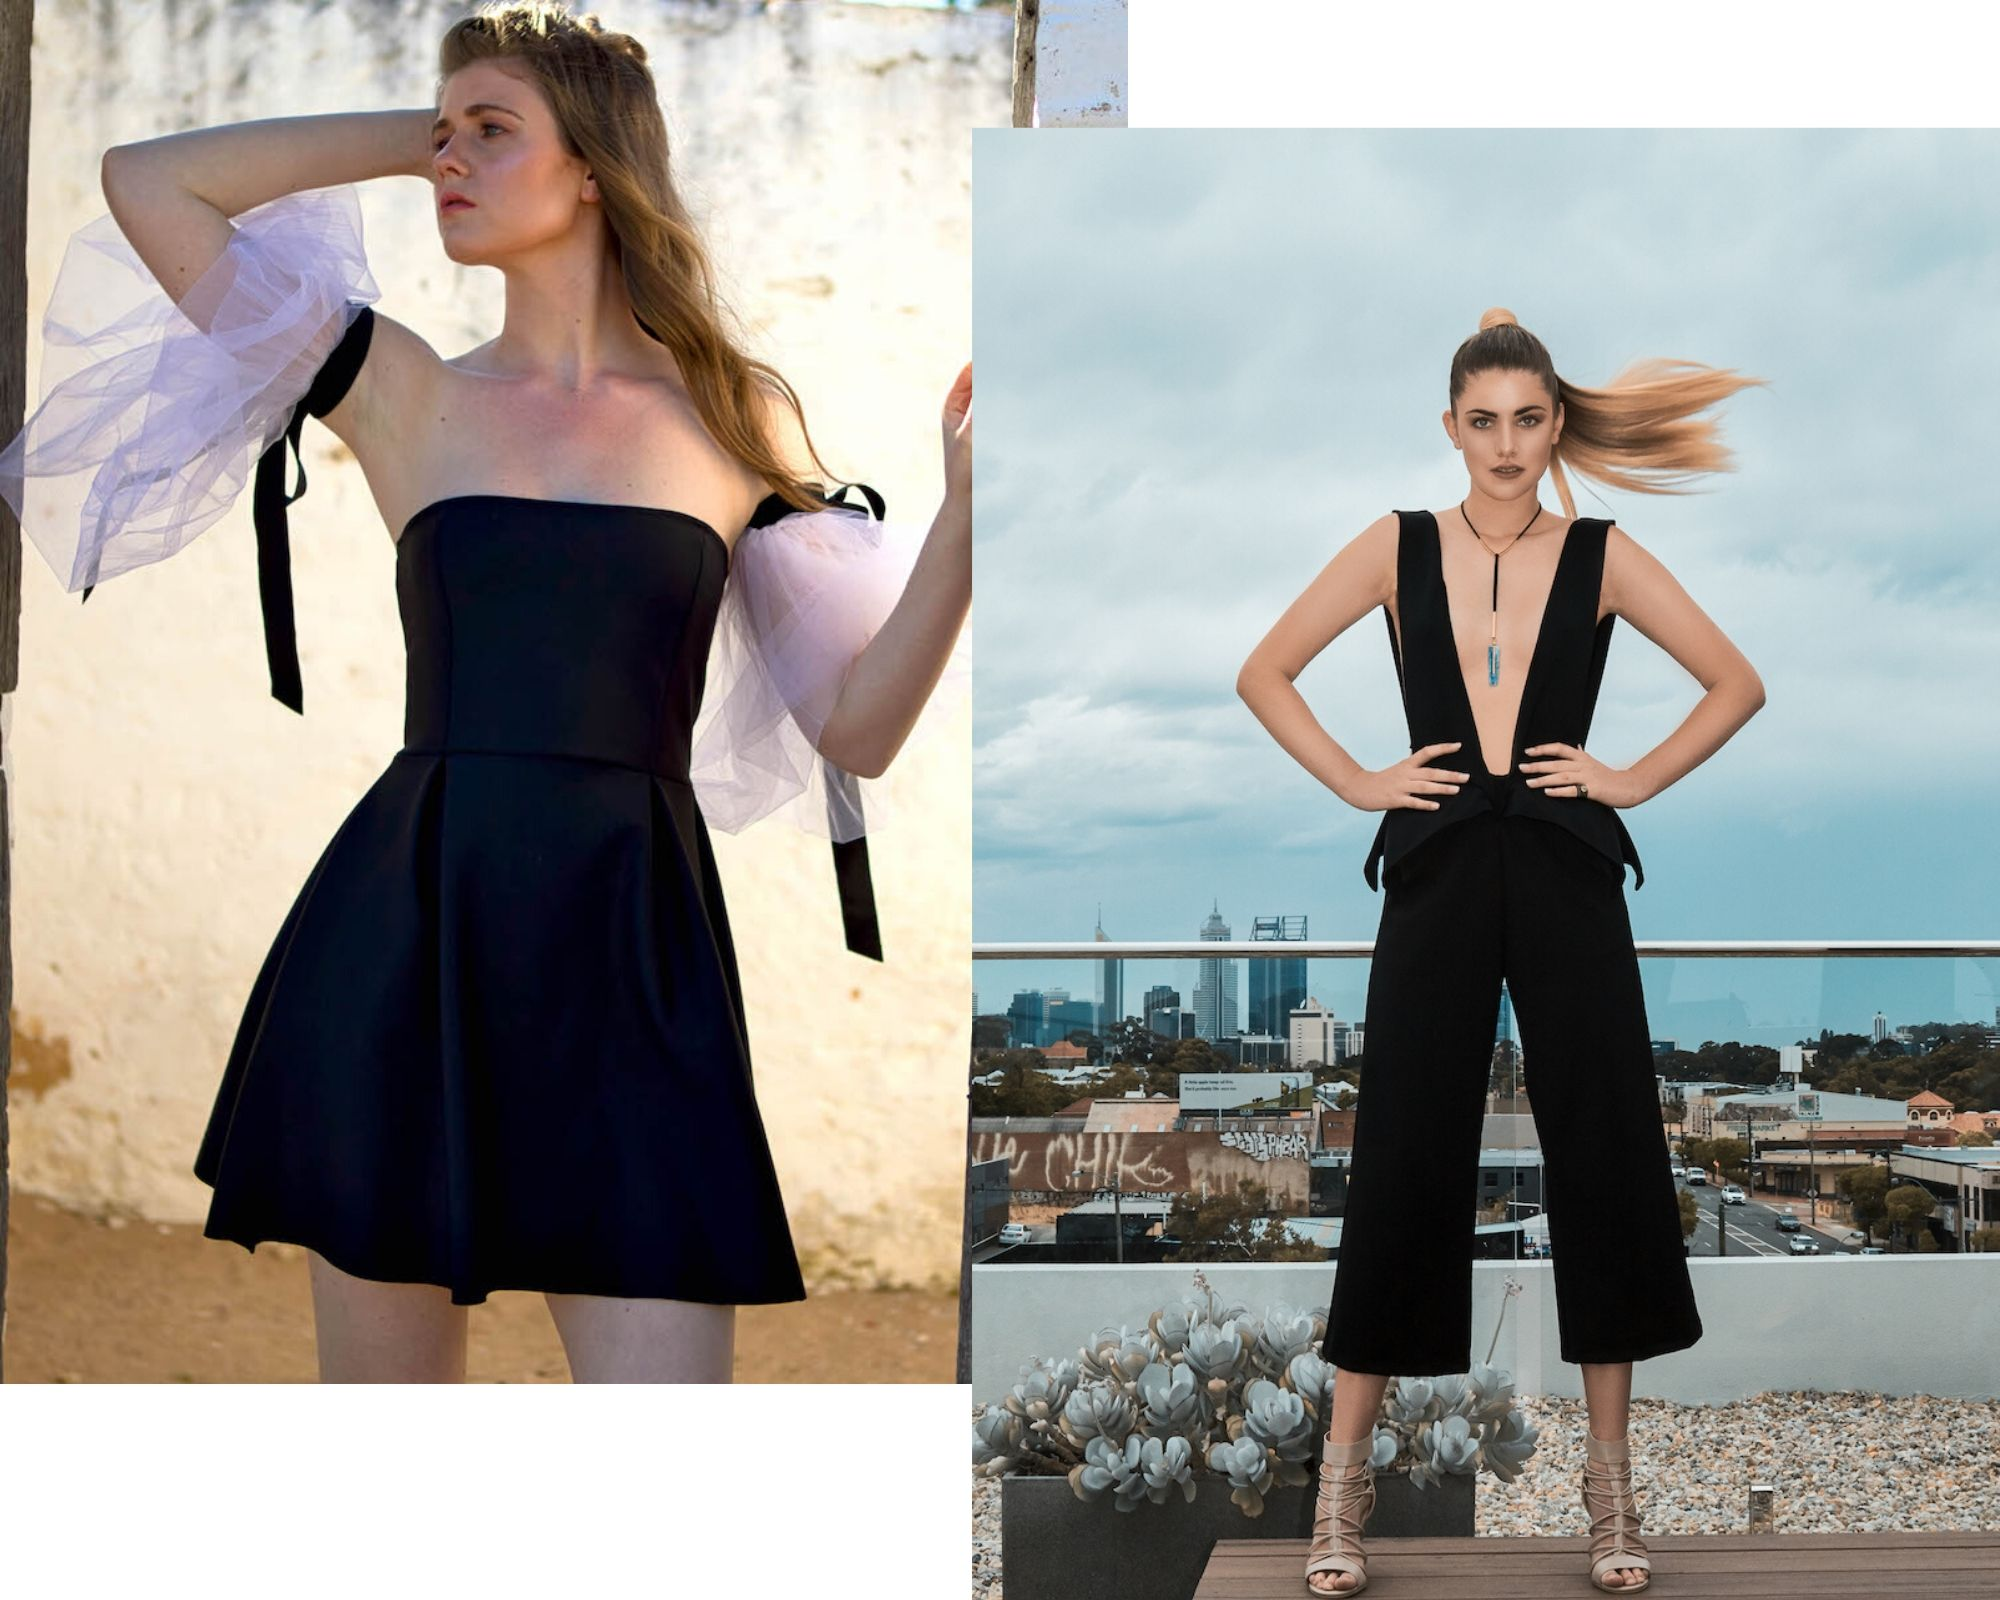 Two images of young women wearing D-tribe designs, one a short black cocktail dress with detachable white puffy sleeves in tule, and the other in a black jumpsuit with plunging neckline.